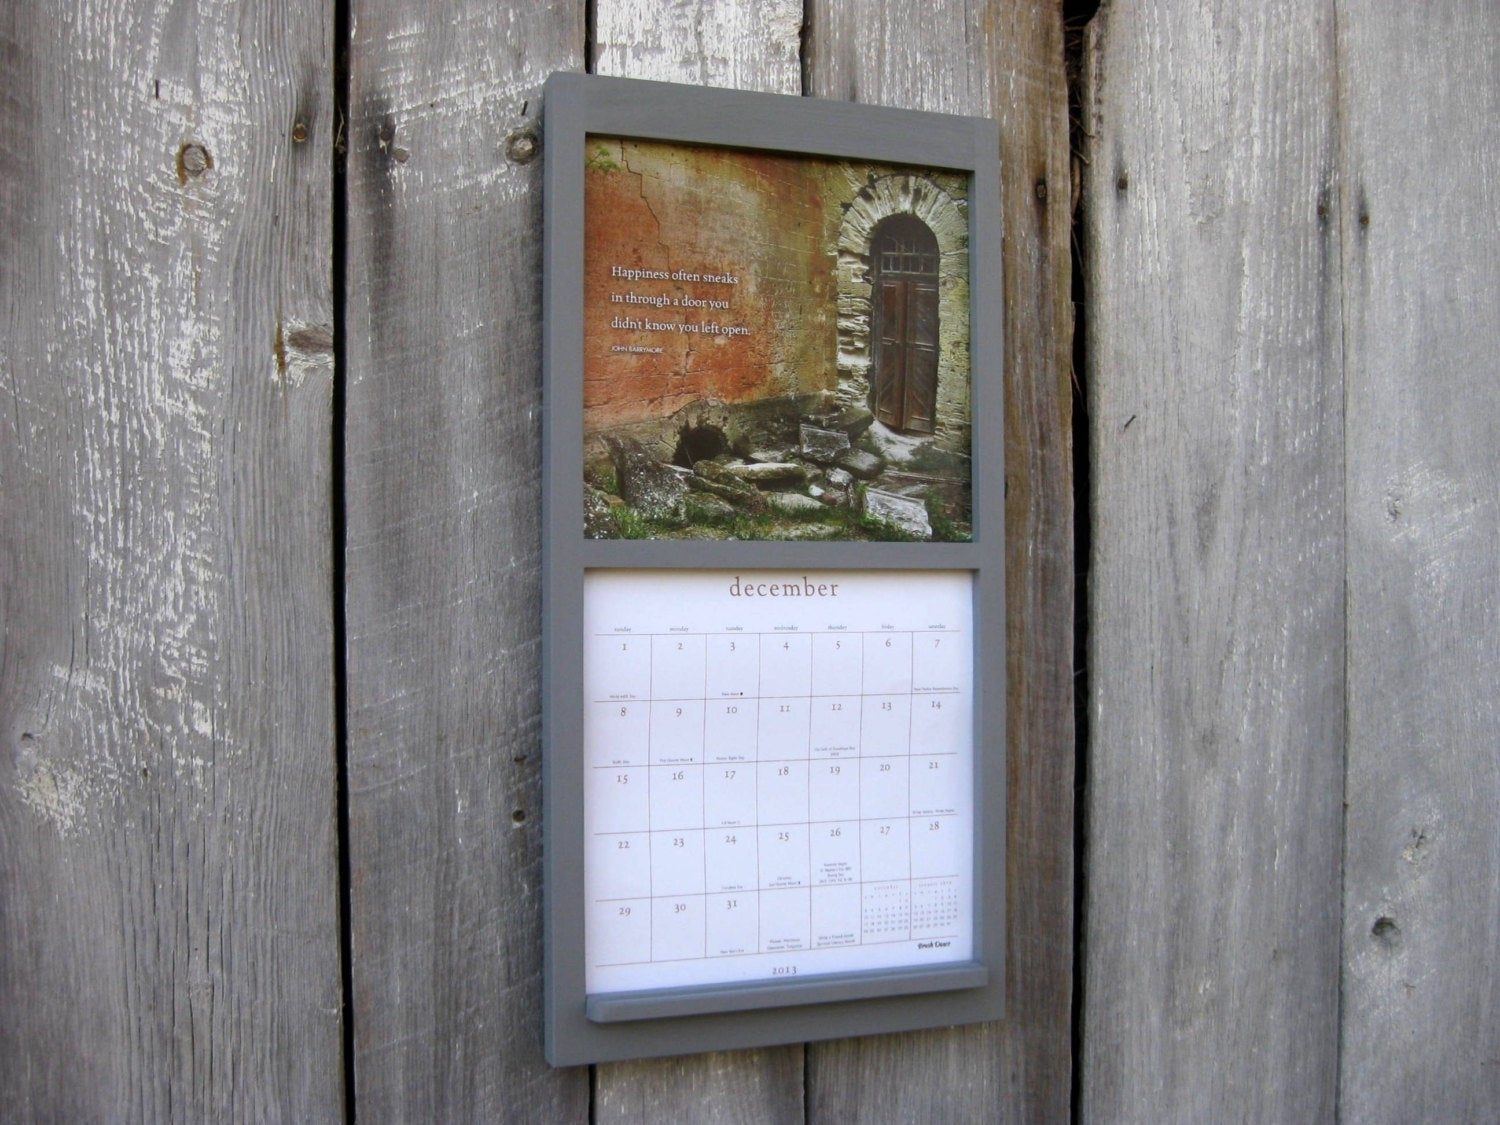 Calendar Holder Hanging Calendar Frame For 12 X 24 | Etsy regarding 12 X 12 Wall Calendar Holder